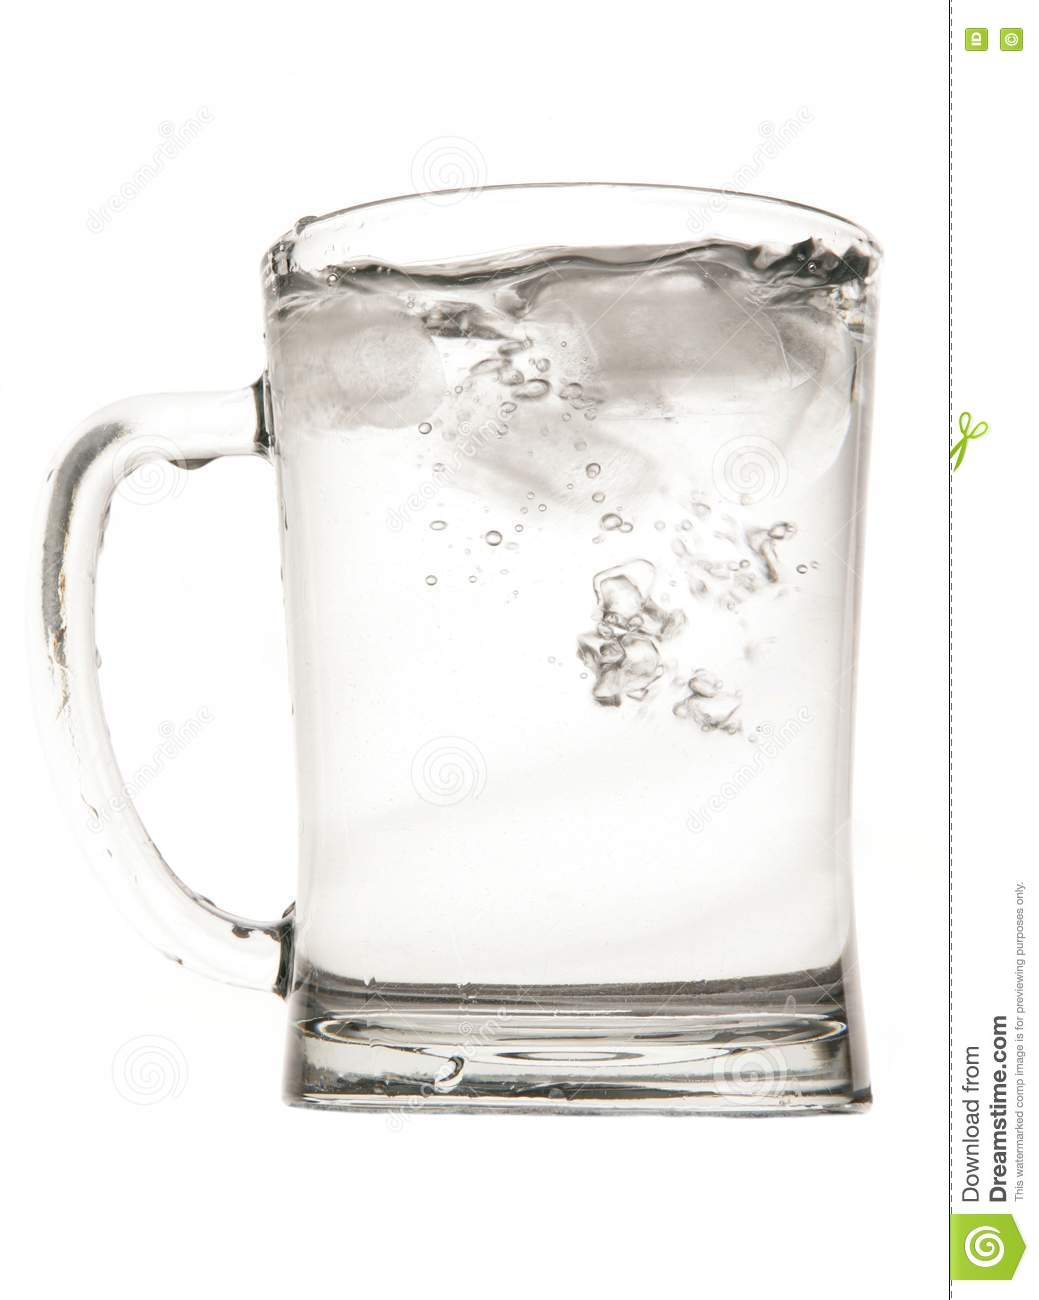 Re-Design a Flawed Object: Beer Glass - Essay Example